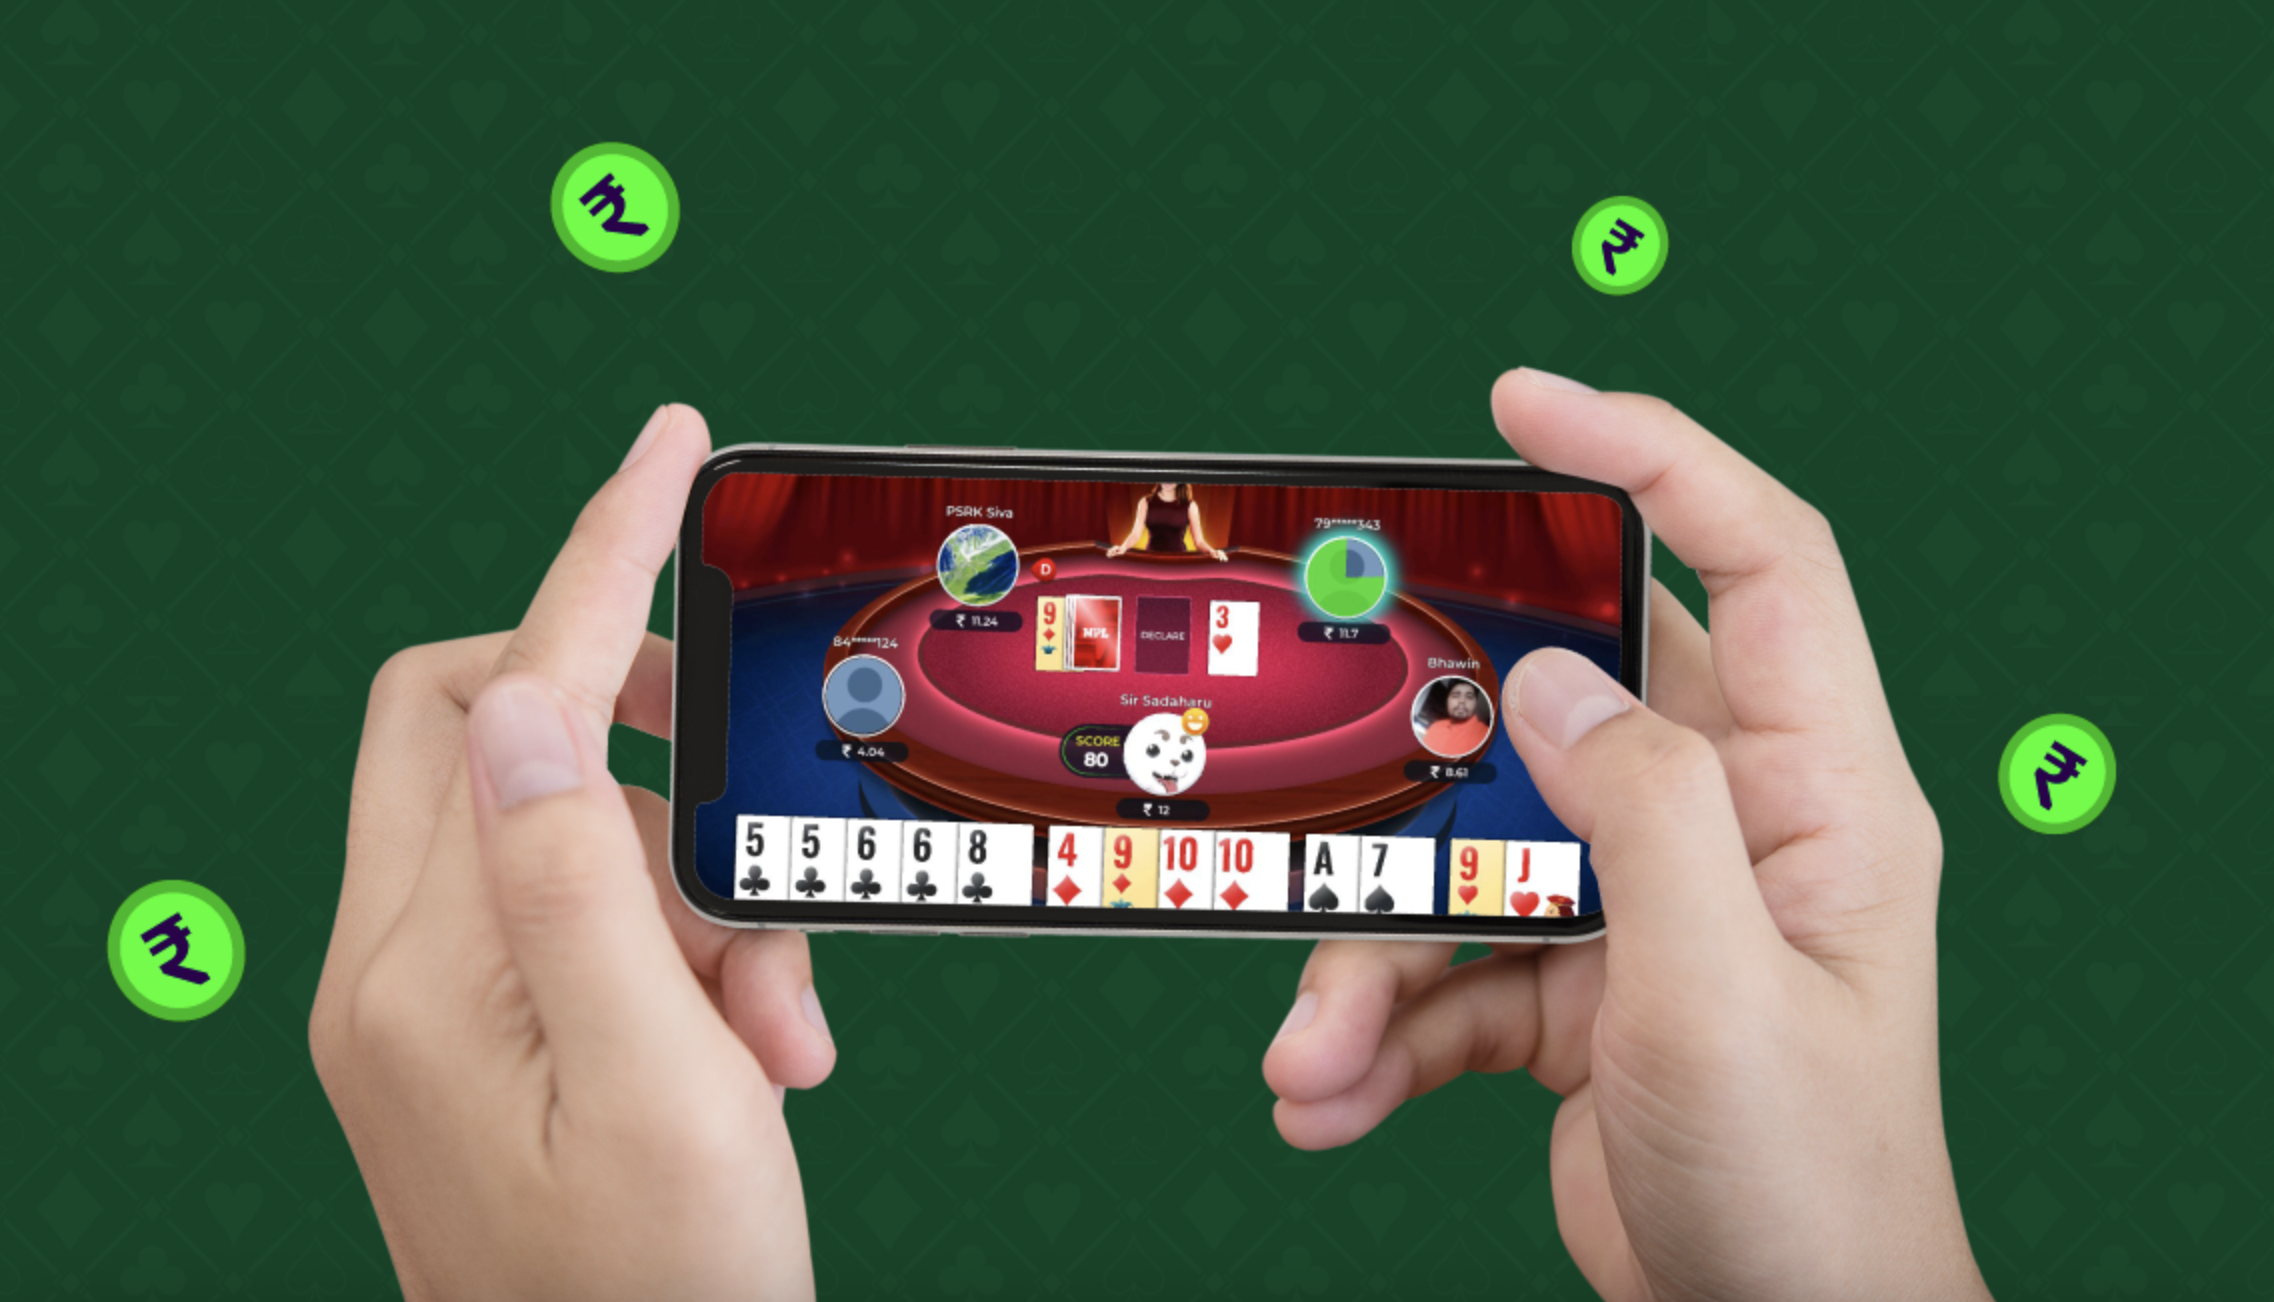 Know About These Basic Terms if You Play Online Card Games